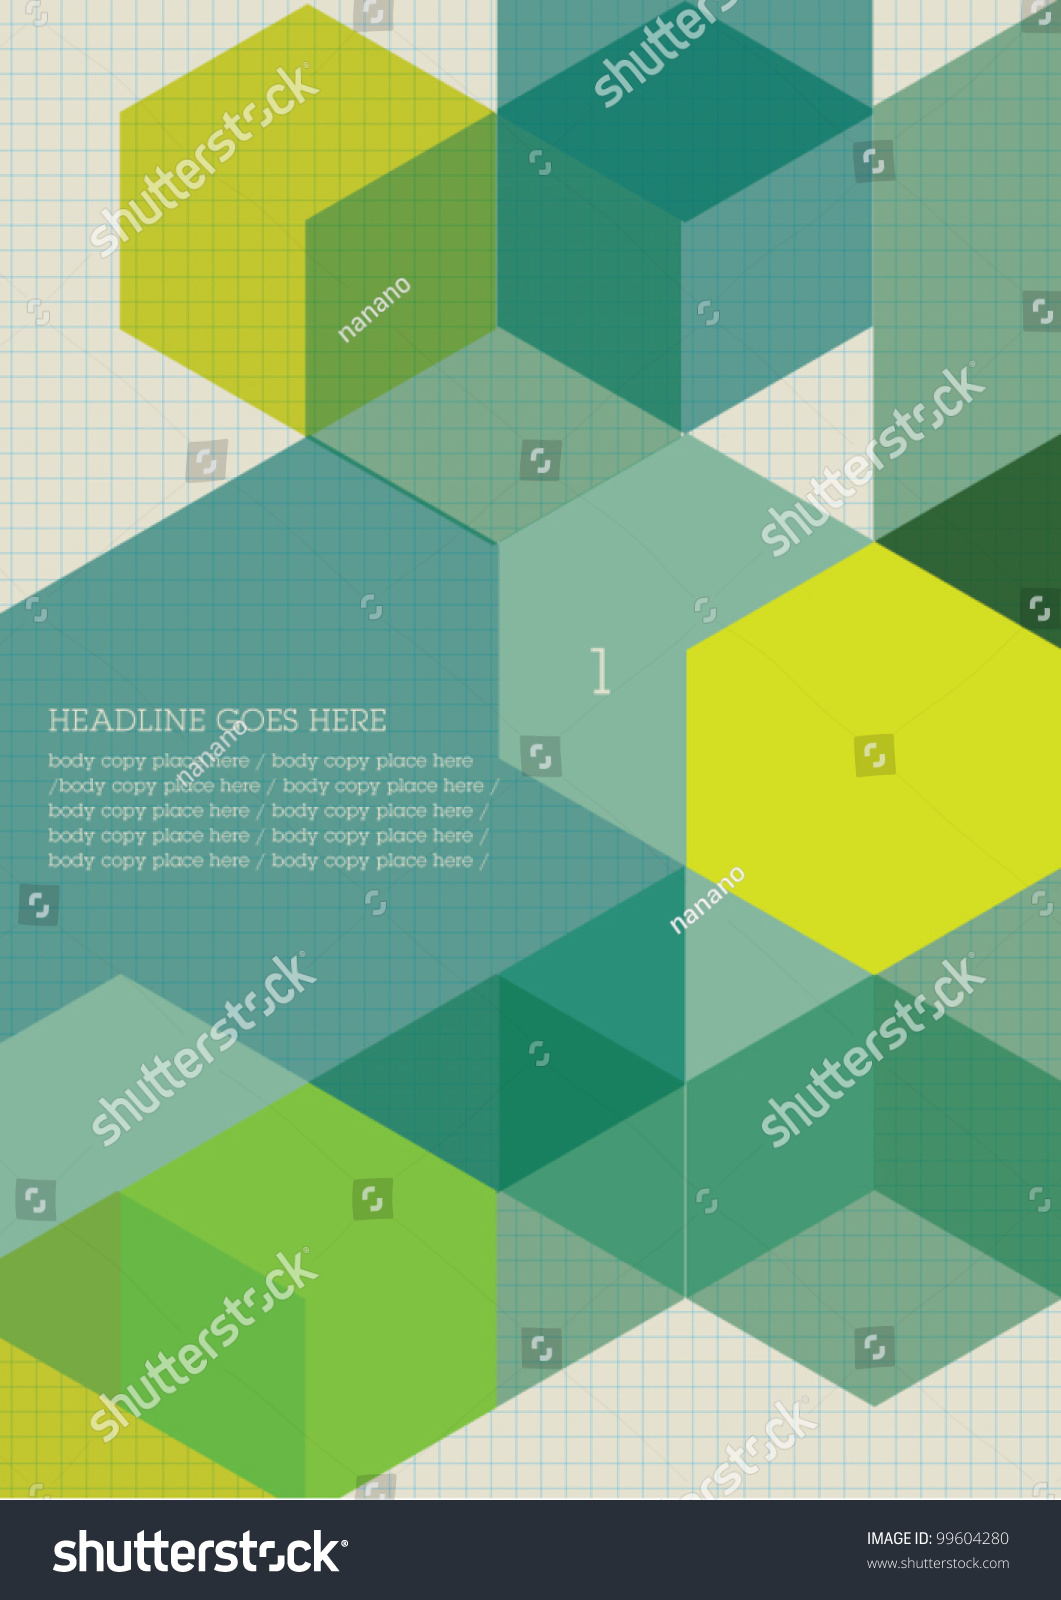 Background Design For Book Cover : Book cover background design graphics layout content page